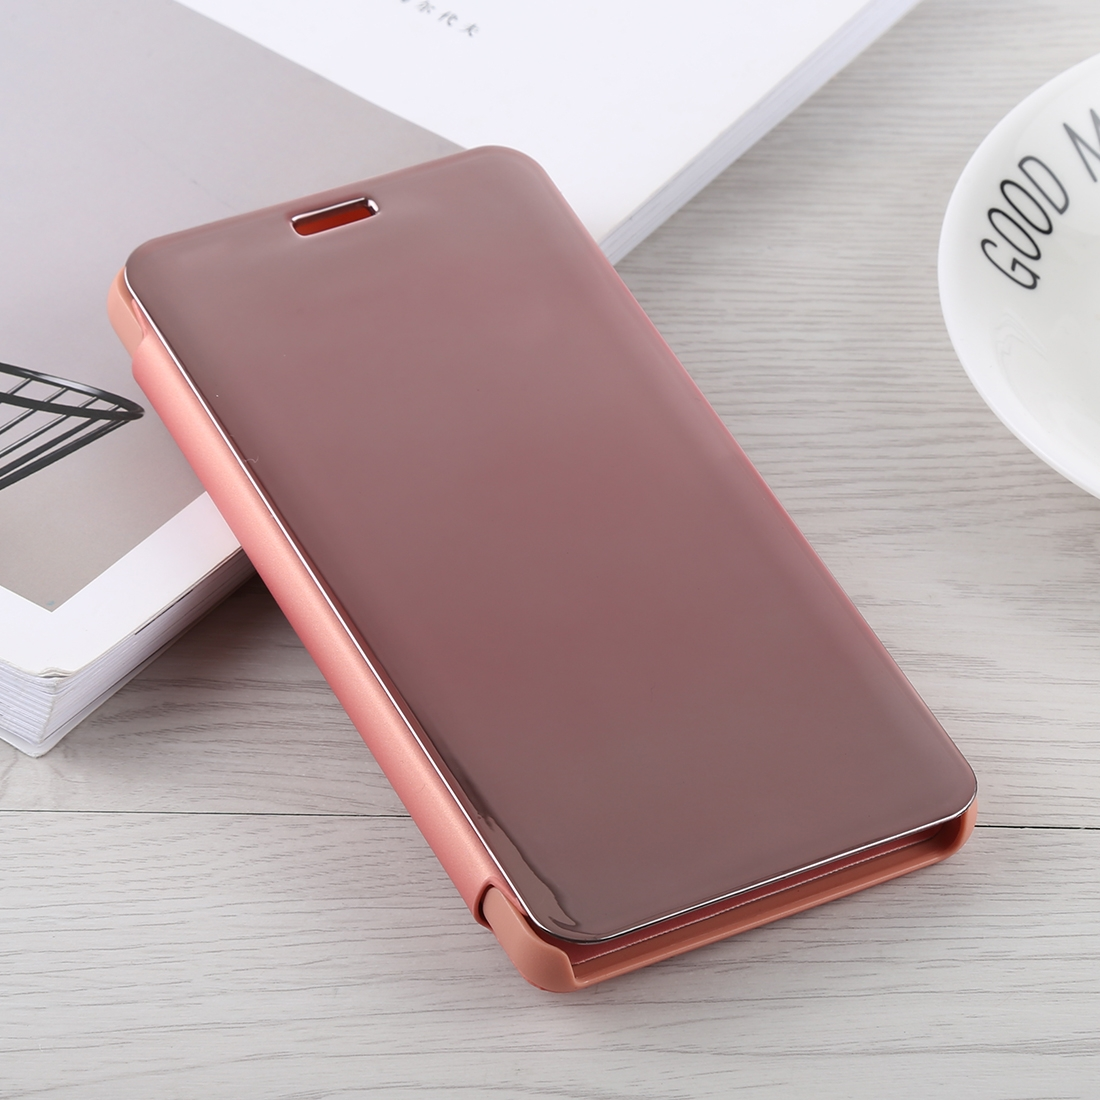 timeless design f2cc6 4410e Mirror Clear View Horizontal Flip PU Leather Case for Xiaomi Redmi Note 5  Pro, with Holder (Rose Gold)